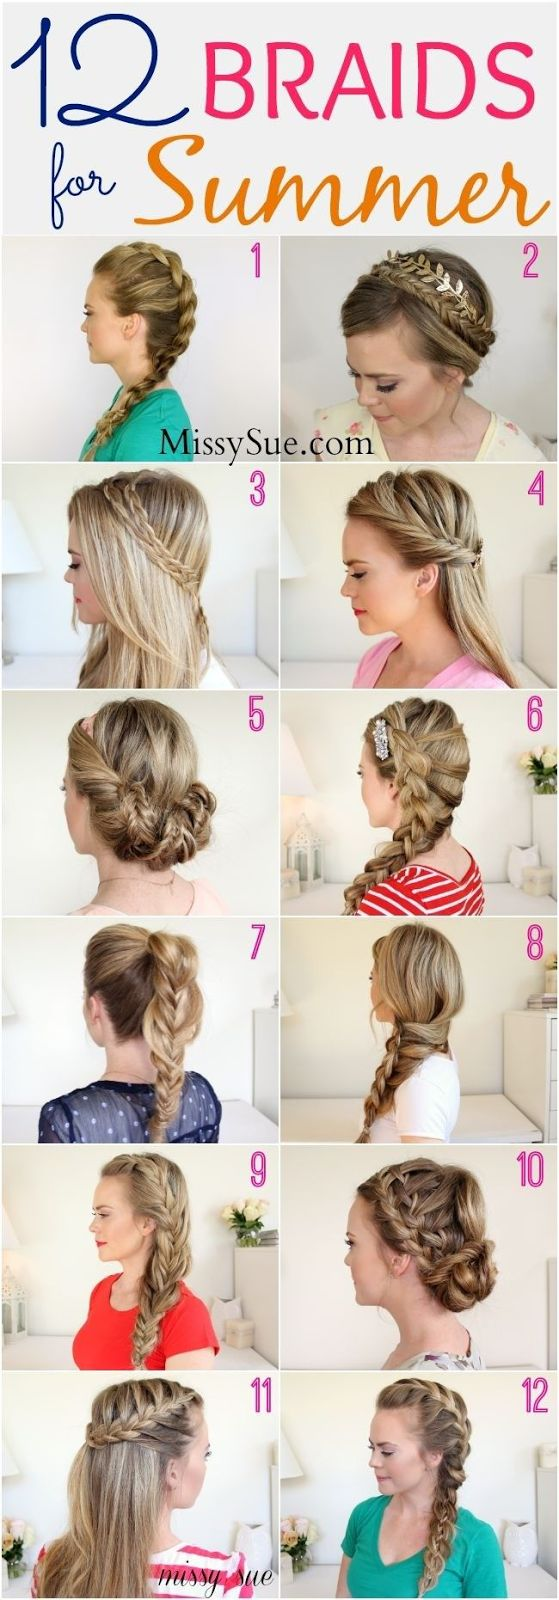 12 Pretty Braided Hairstyle for Summer